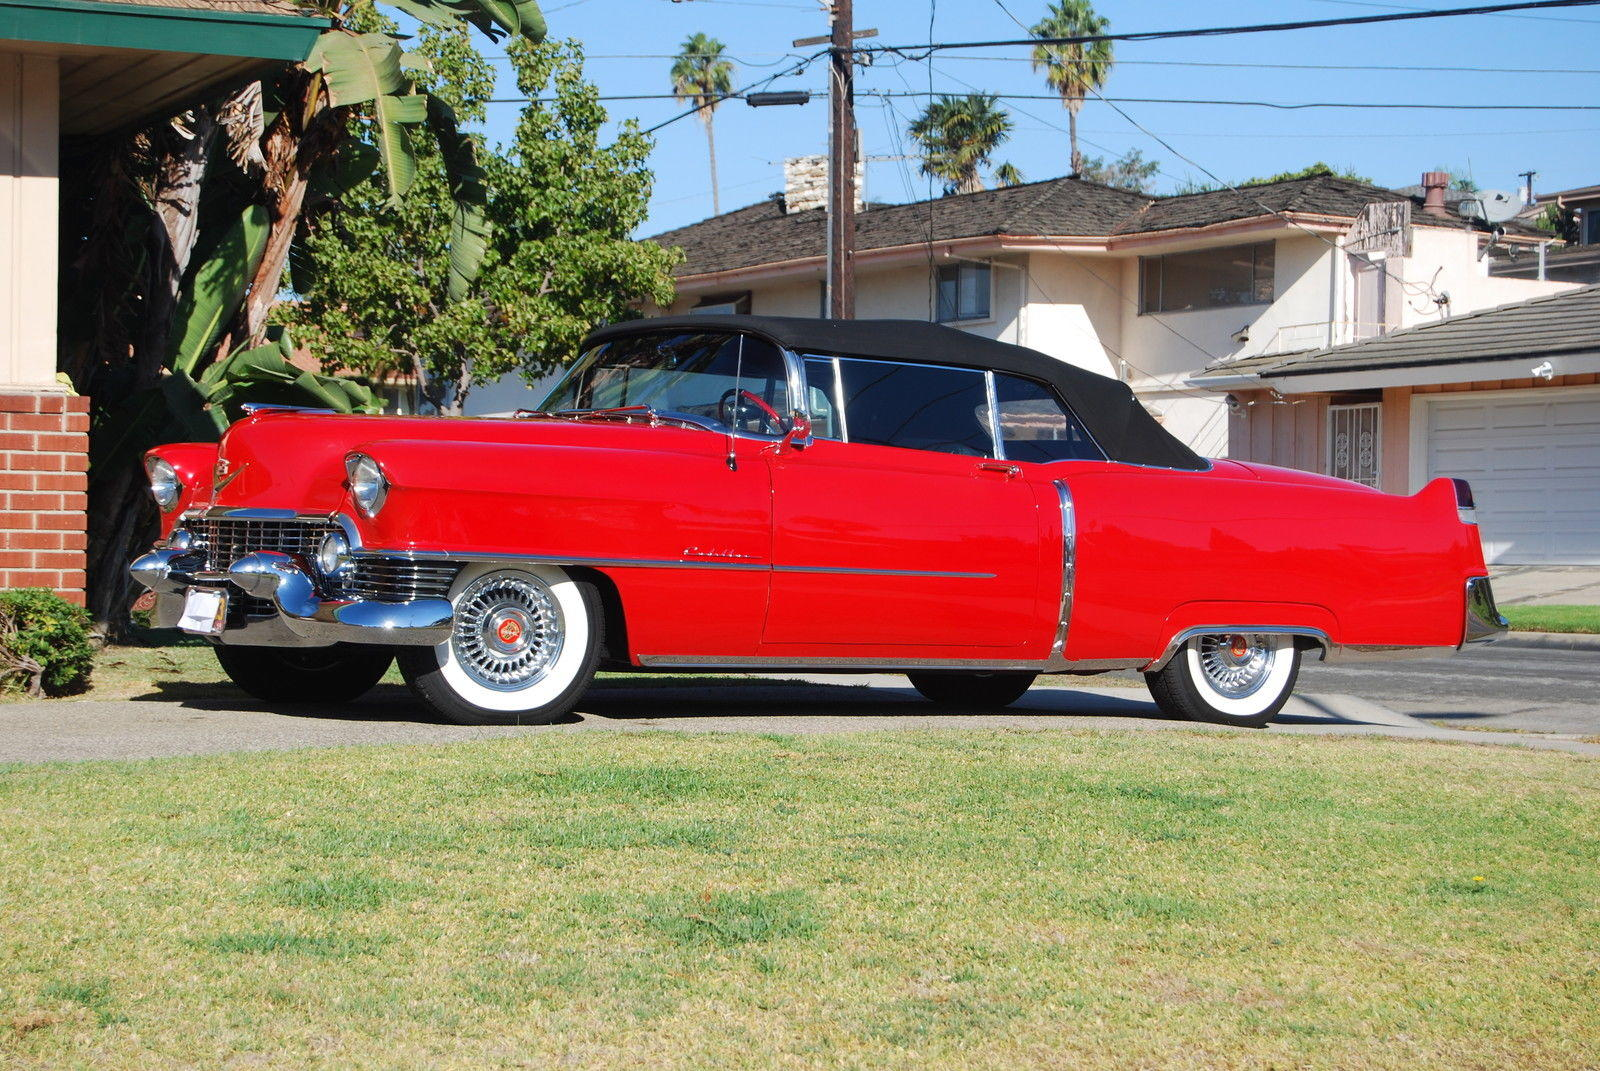 Sweet 1954 Cadillac DeVille Series 62 Convertible is Cherry